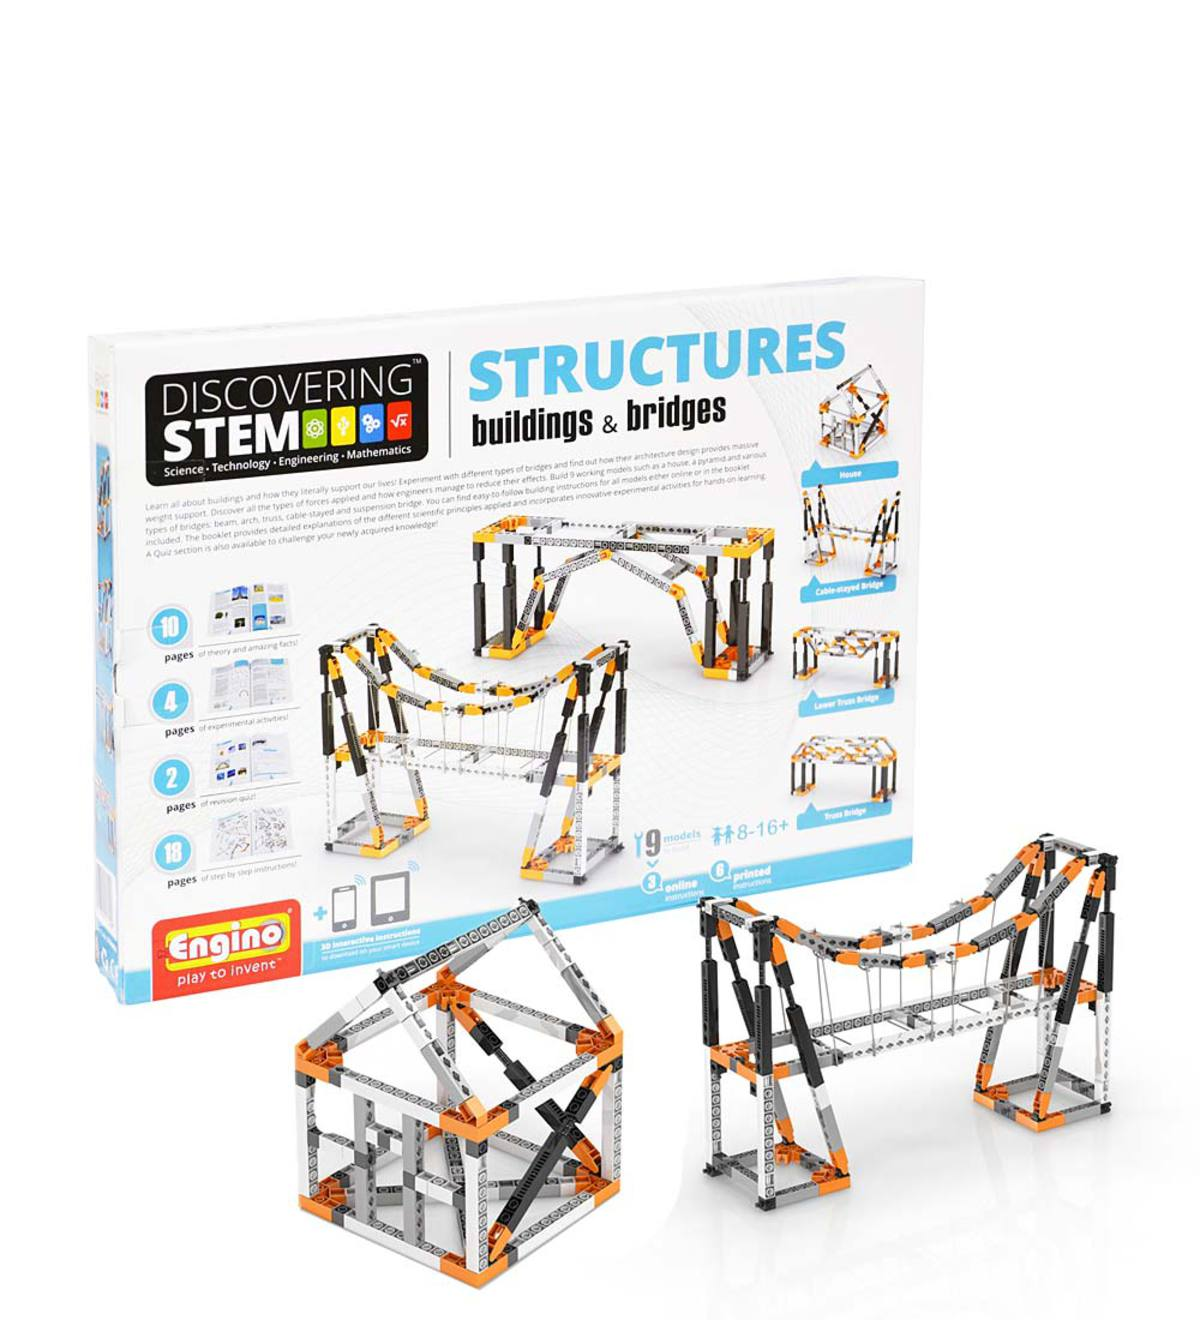 Structures, Buildings, and Bridges Discovery Kit | 10 years